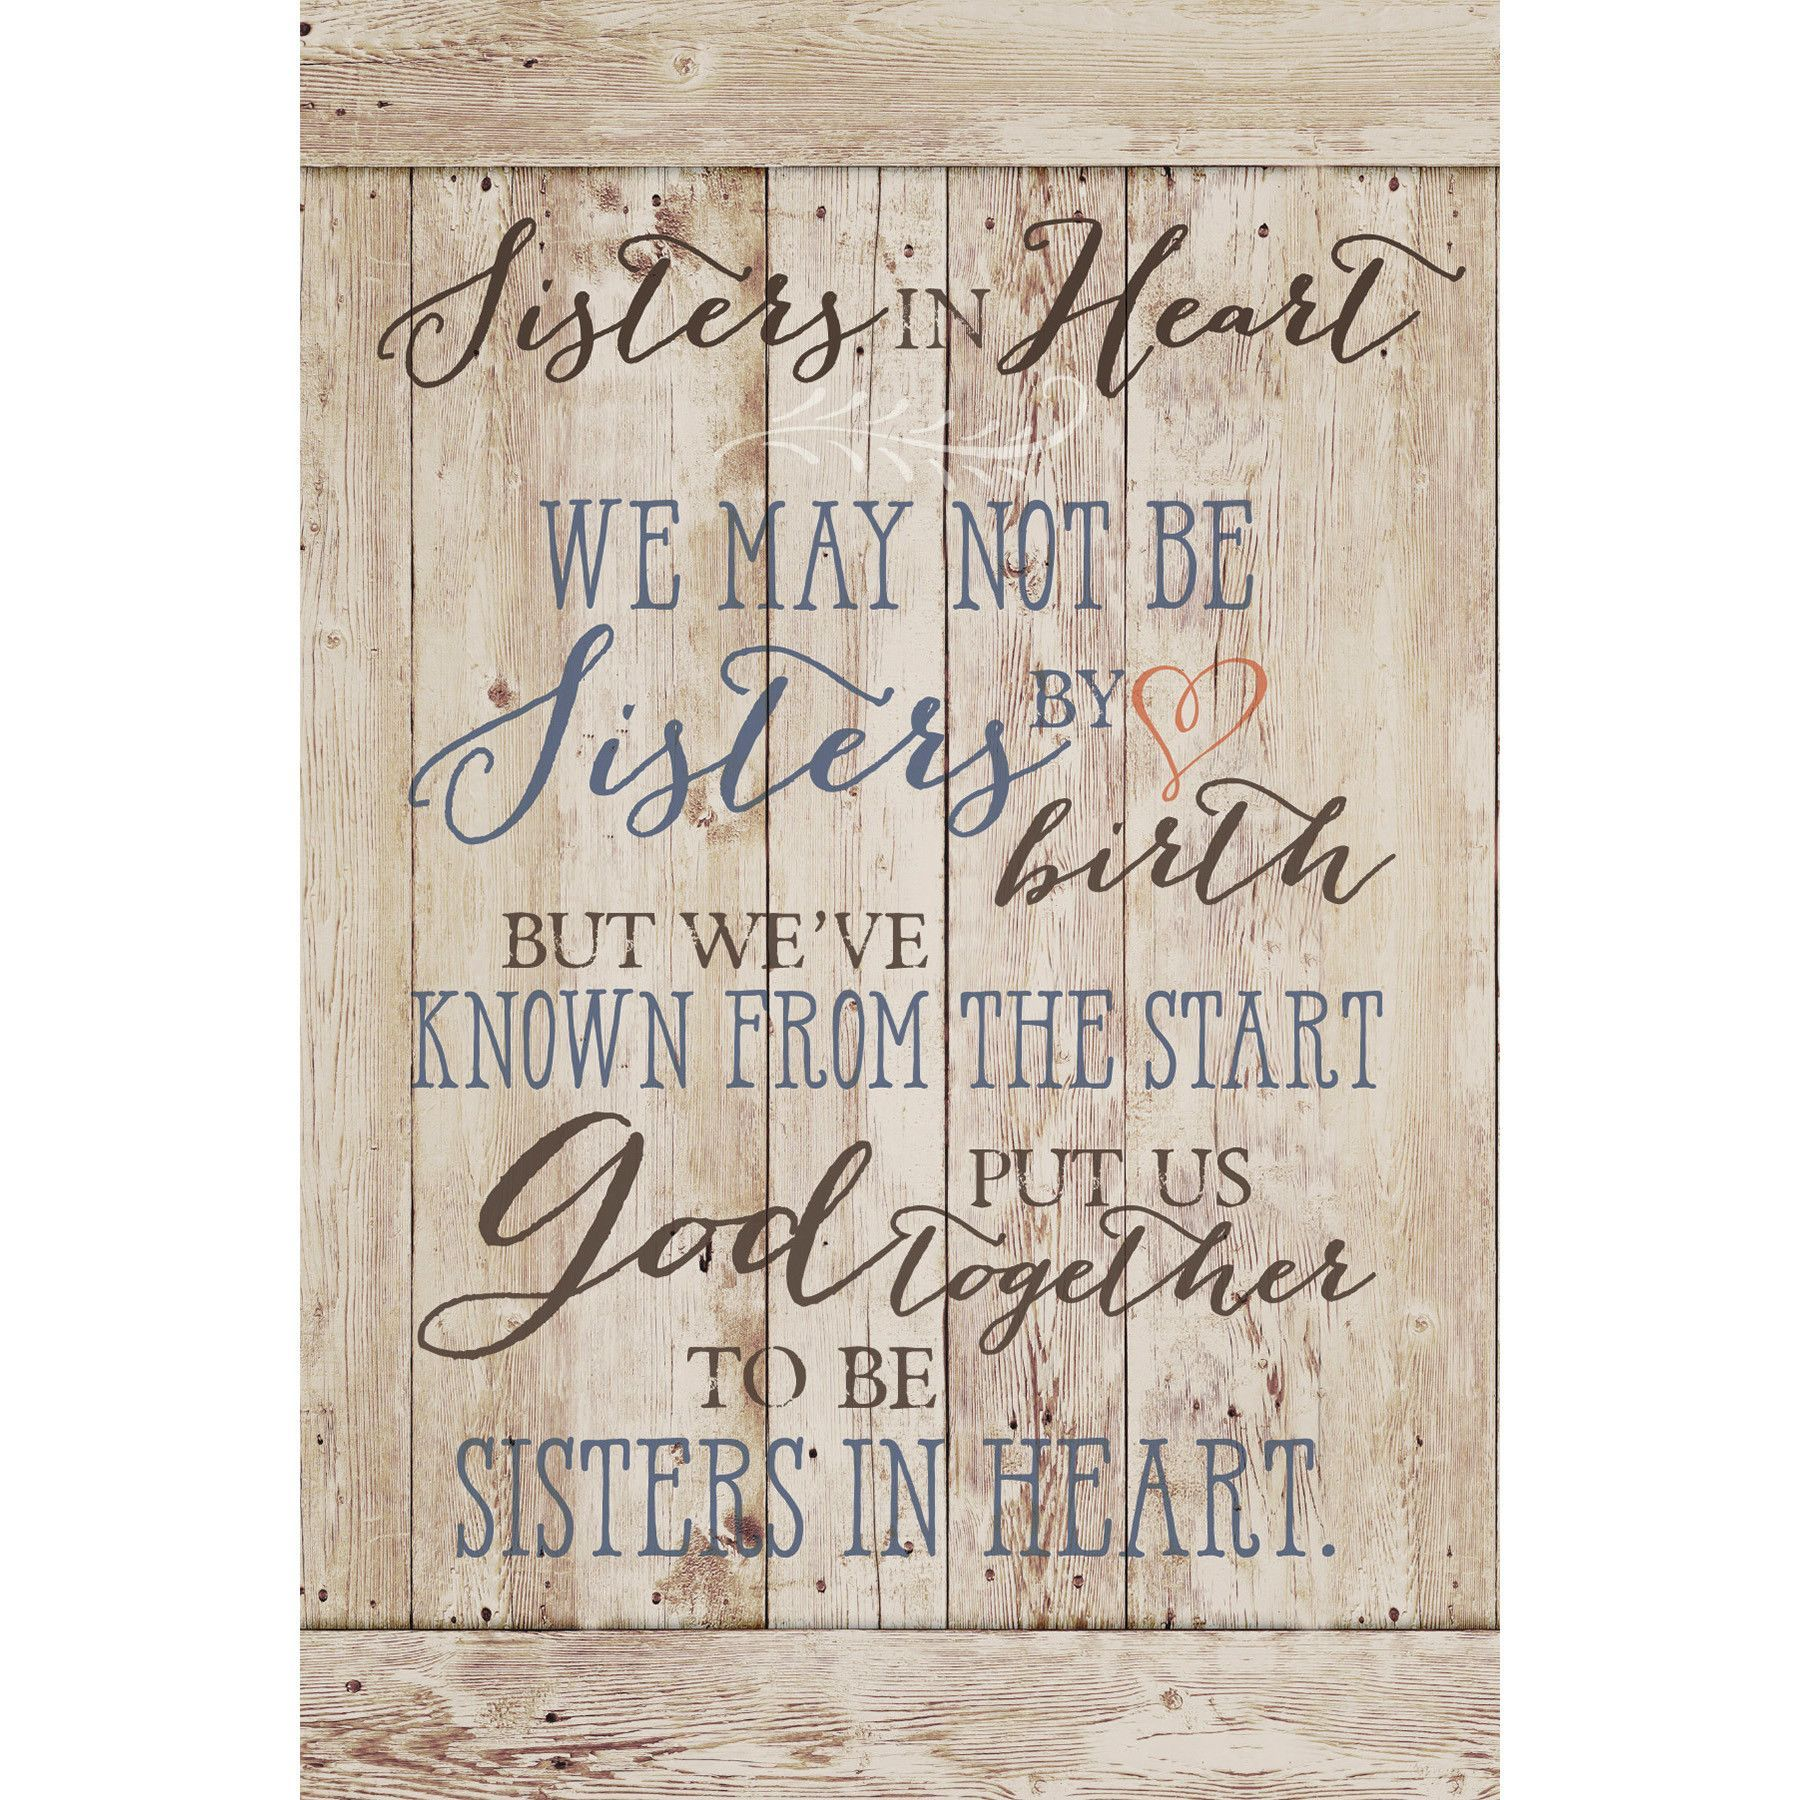 Sisters In Heart… New Horizons Wood Textual Plaque